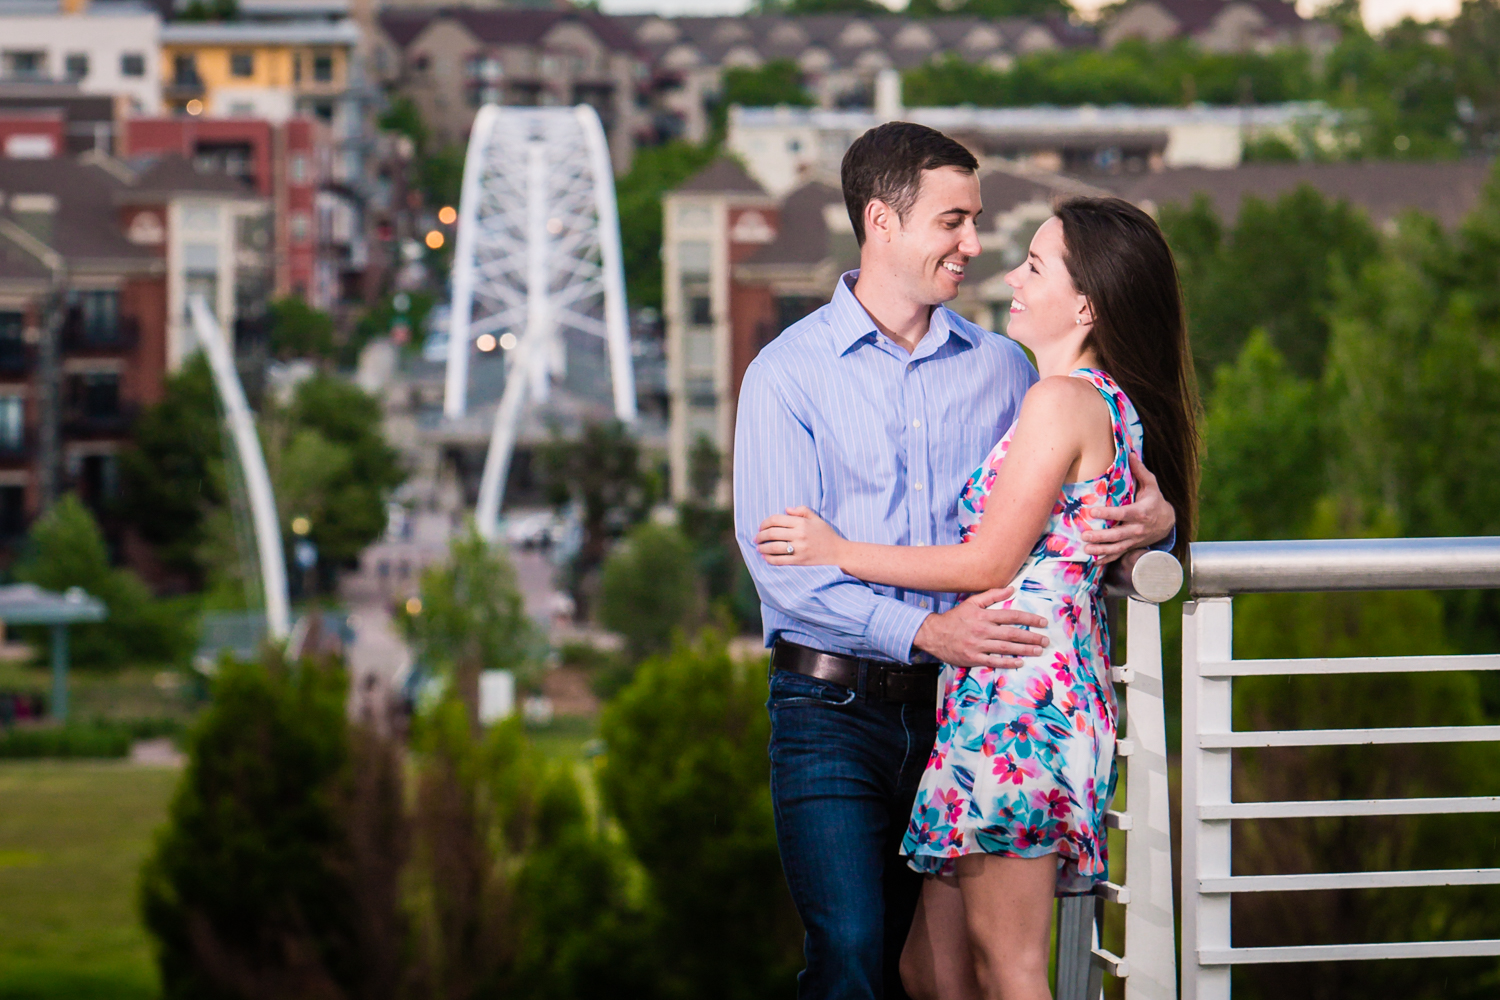 Denver Engagements with Highland Bridge in background. Photographed by Jared M. Gant